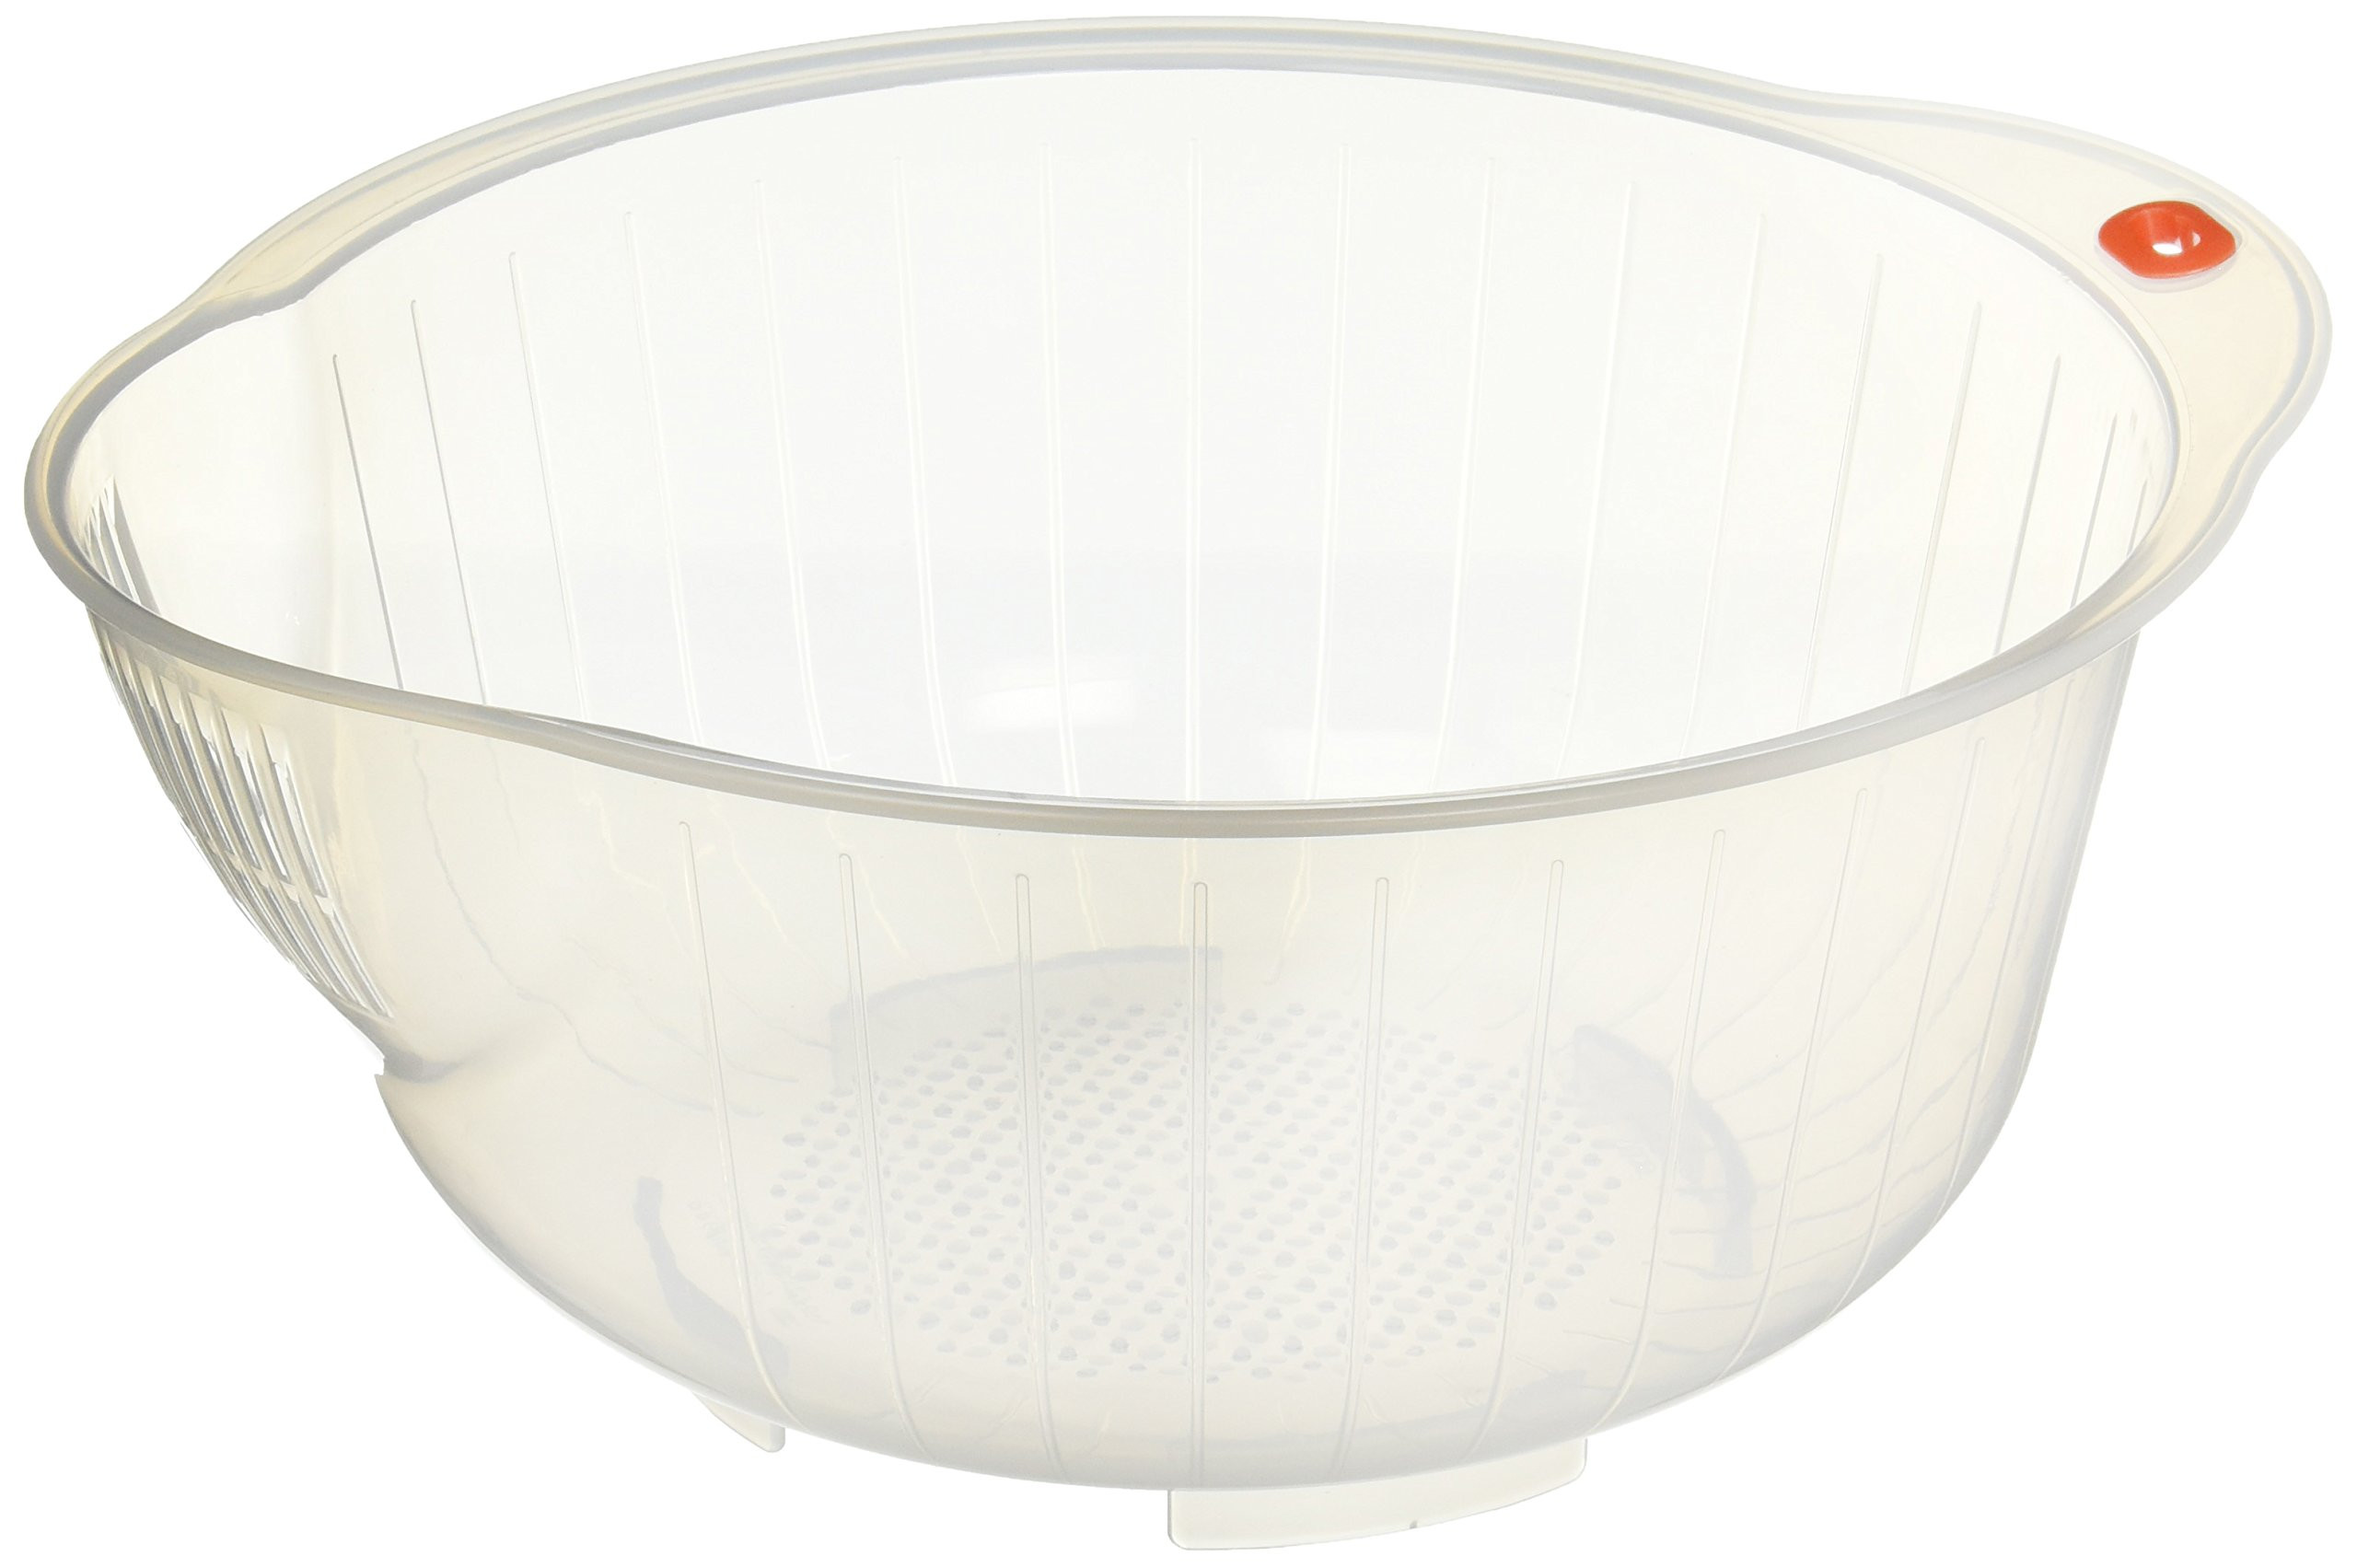 bamboo vs hardwood flooring resale value of best rated in rice bowls helpful customer reviews amazon com with regard to inomata 80800 japanese rice washing bowl with strainer 2 5 quart capacity